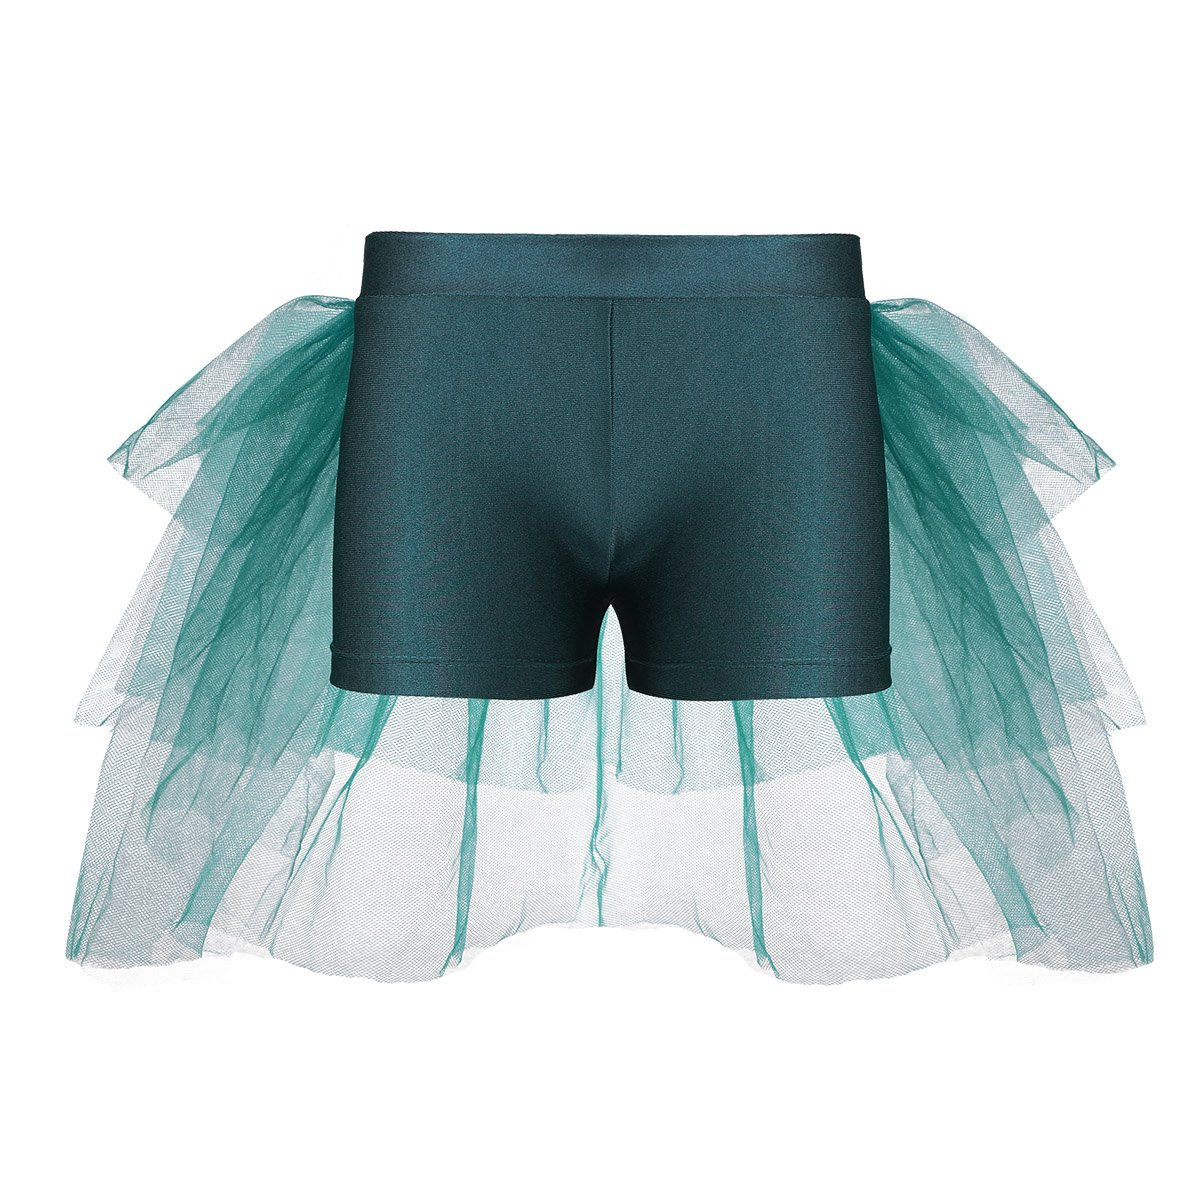 Agoky Kids Girls Shorts Bottoms with Attached Bustle Tiered Mesh for Ballet Dance Stage Performance Green 3-4